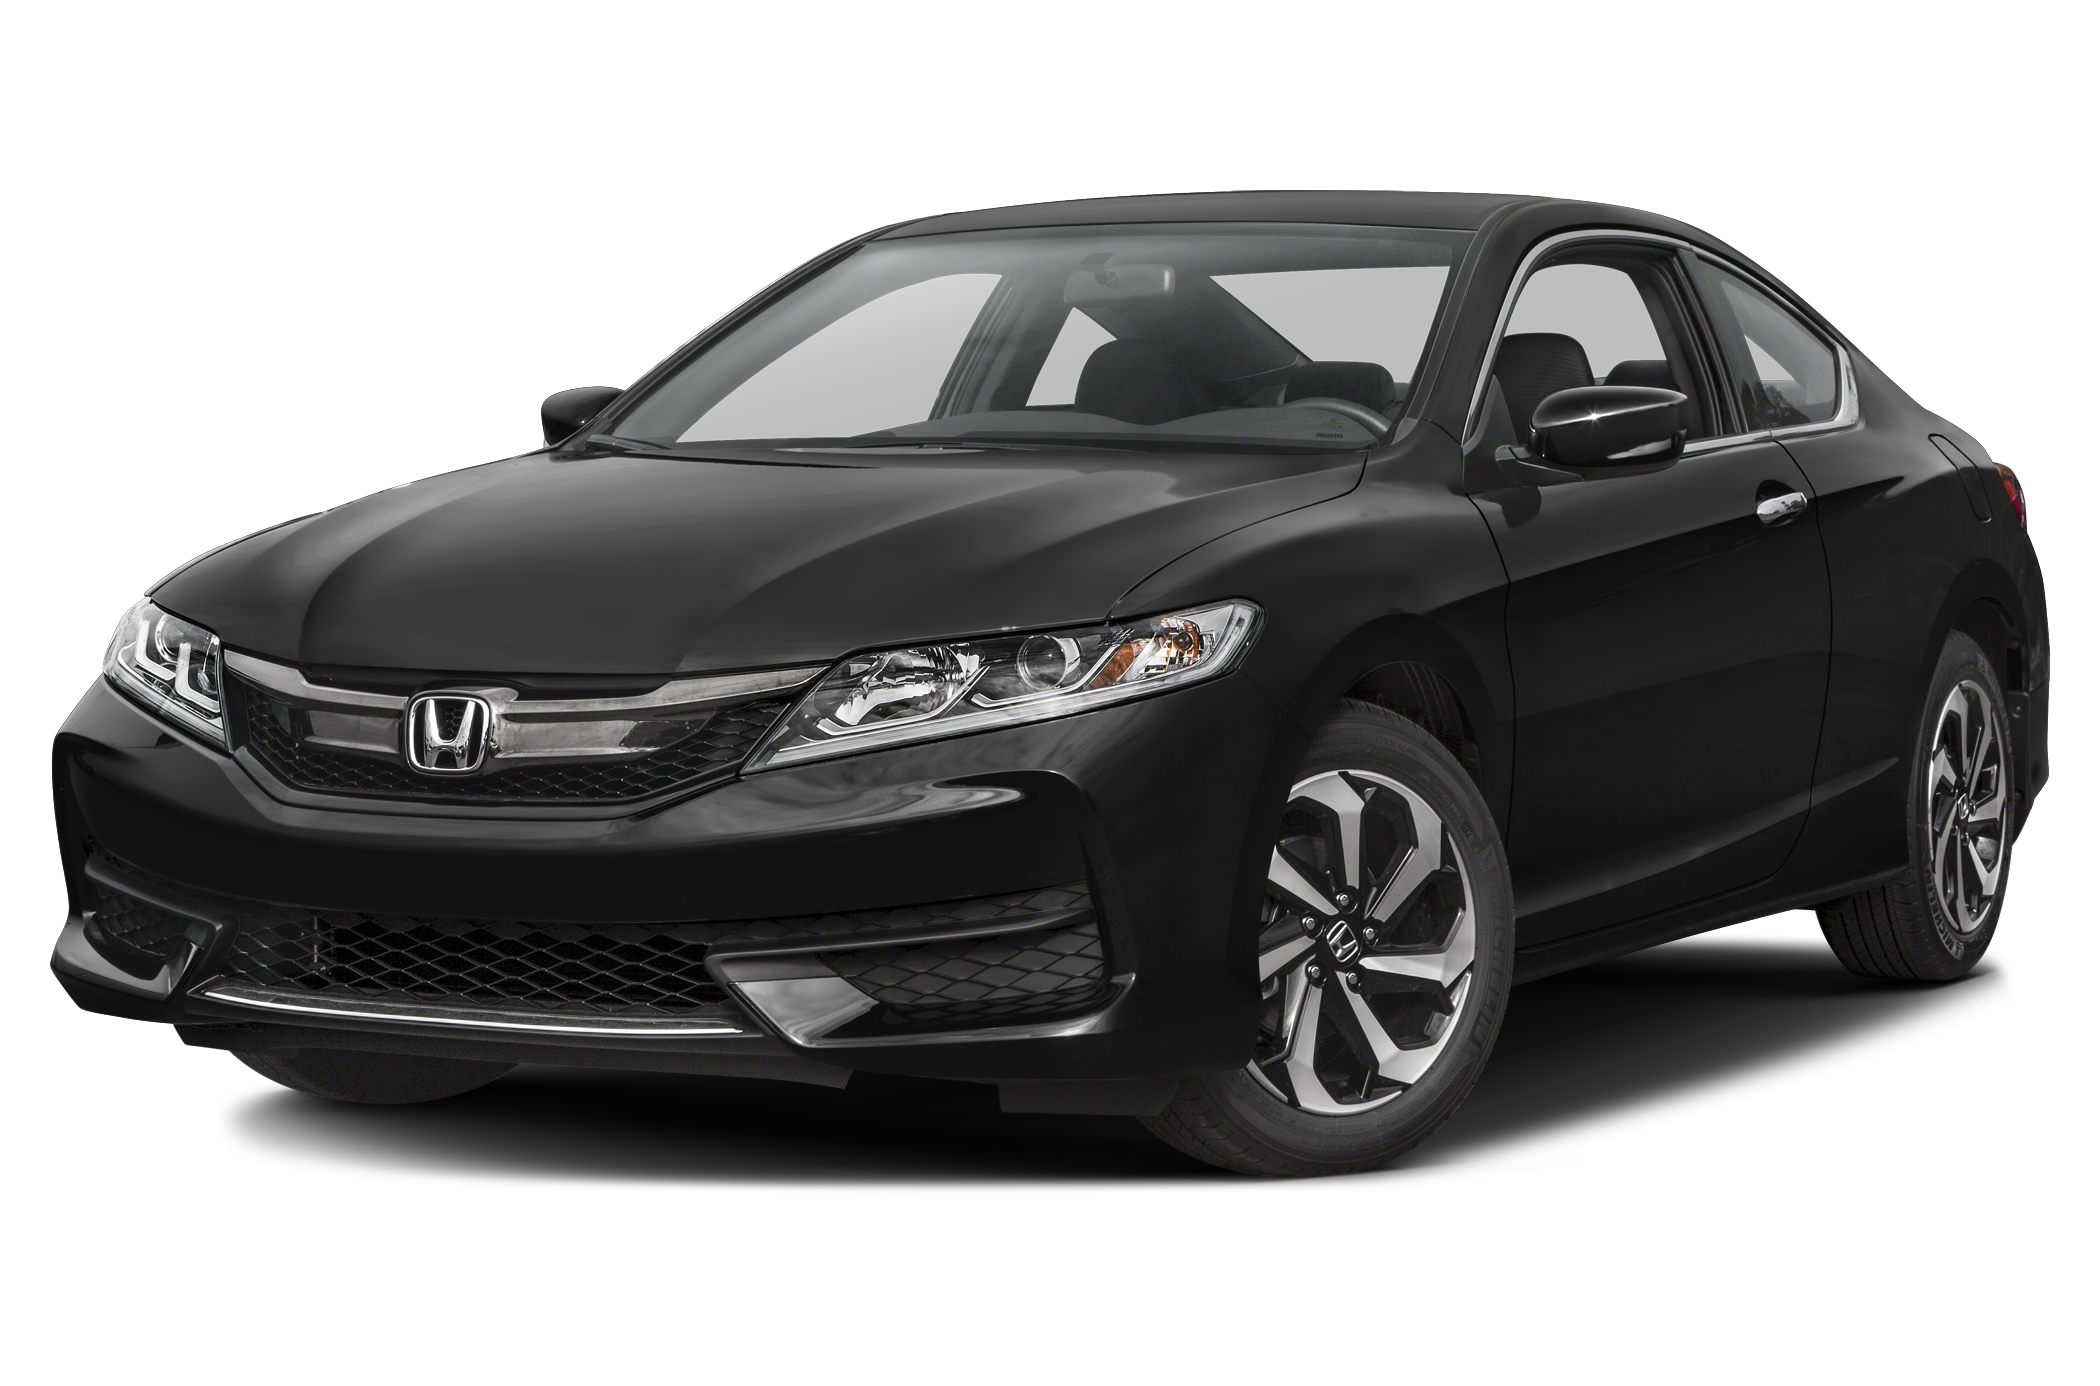 2016 Honda Accord LX S 2dr Coupe Specs And Prices